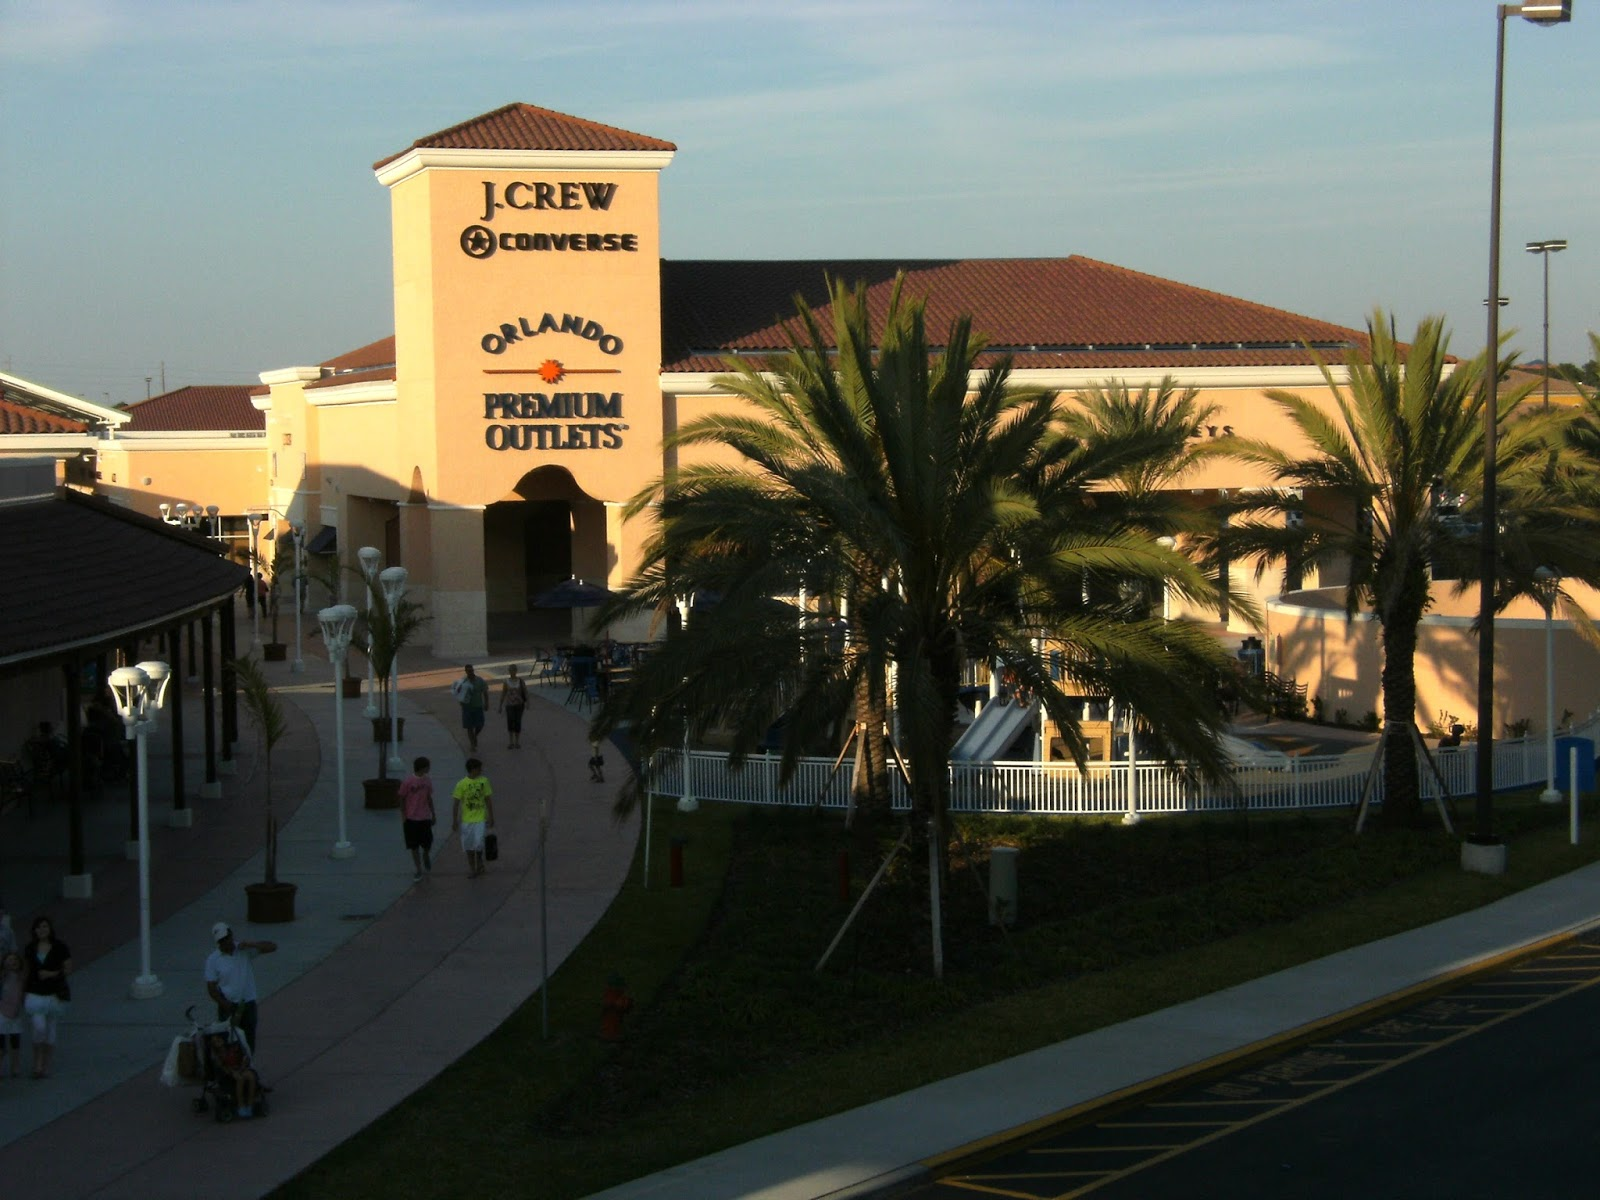 Orlando Vineland Premium Outlets Travel Tips Florida